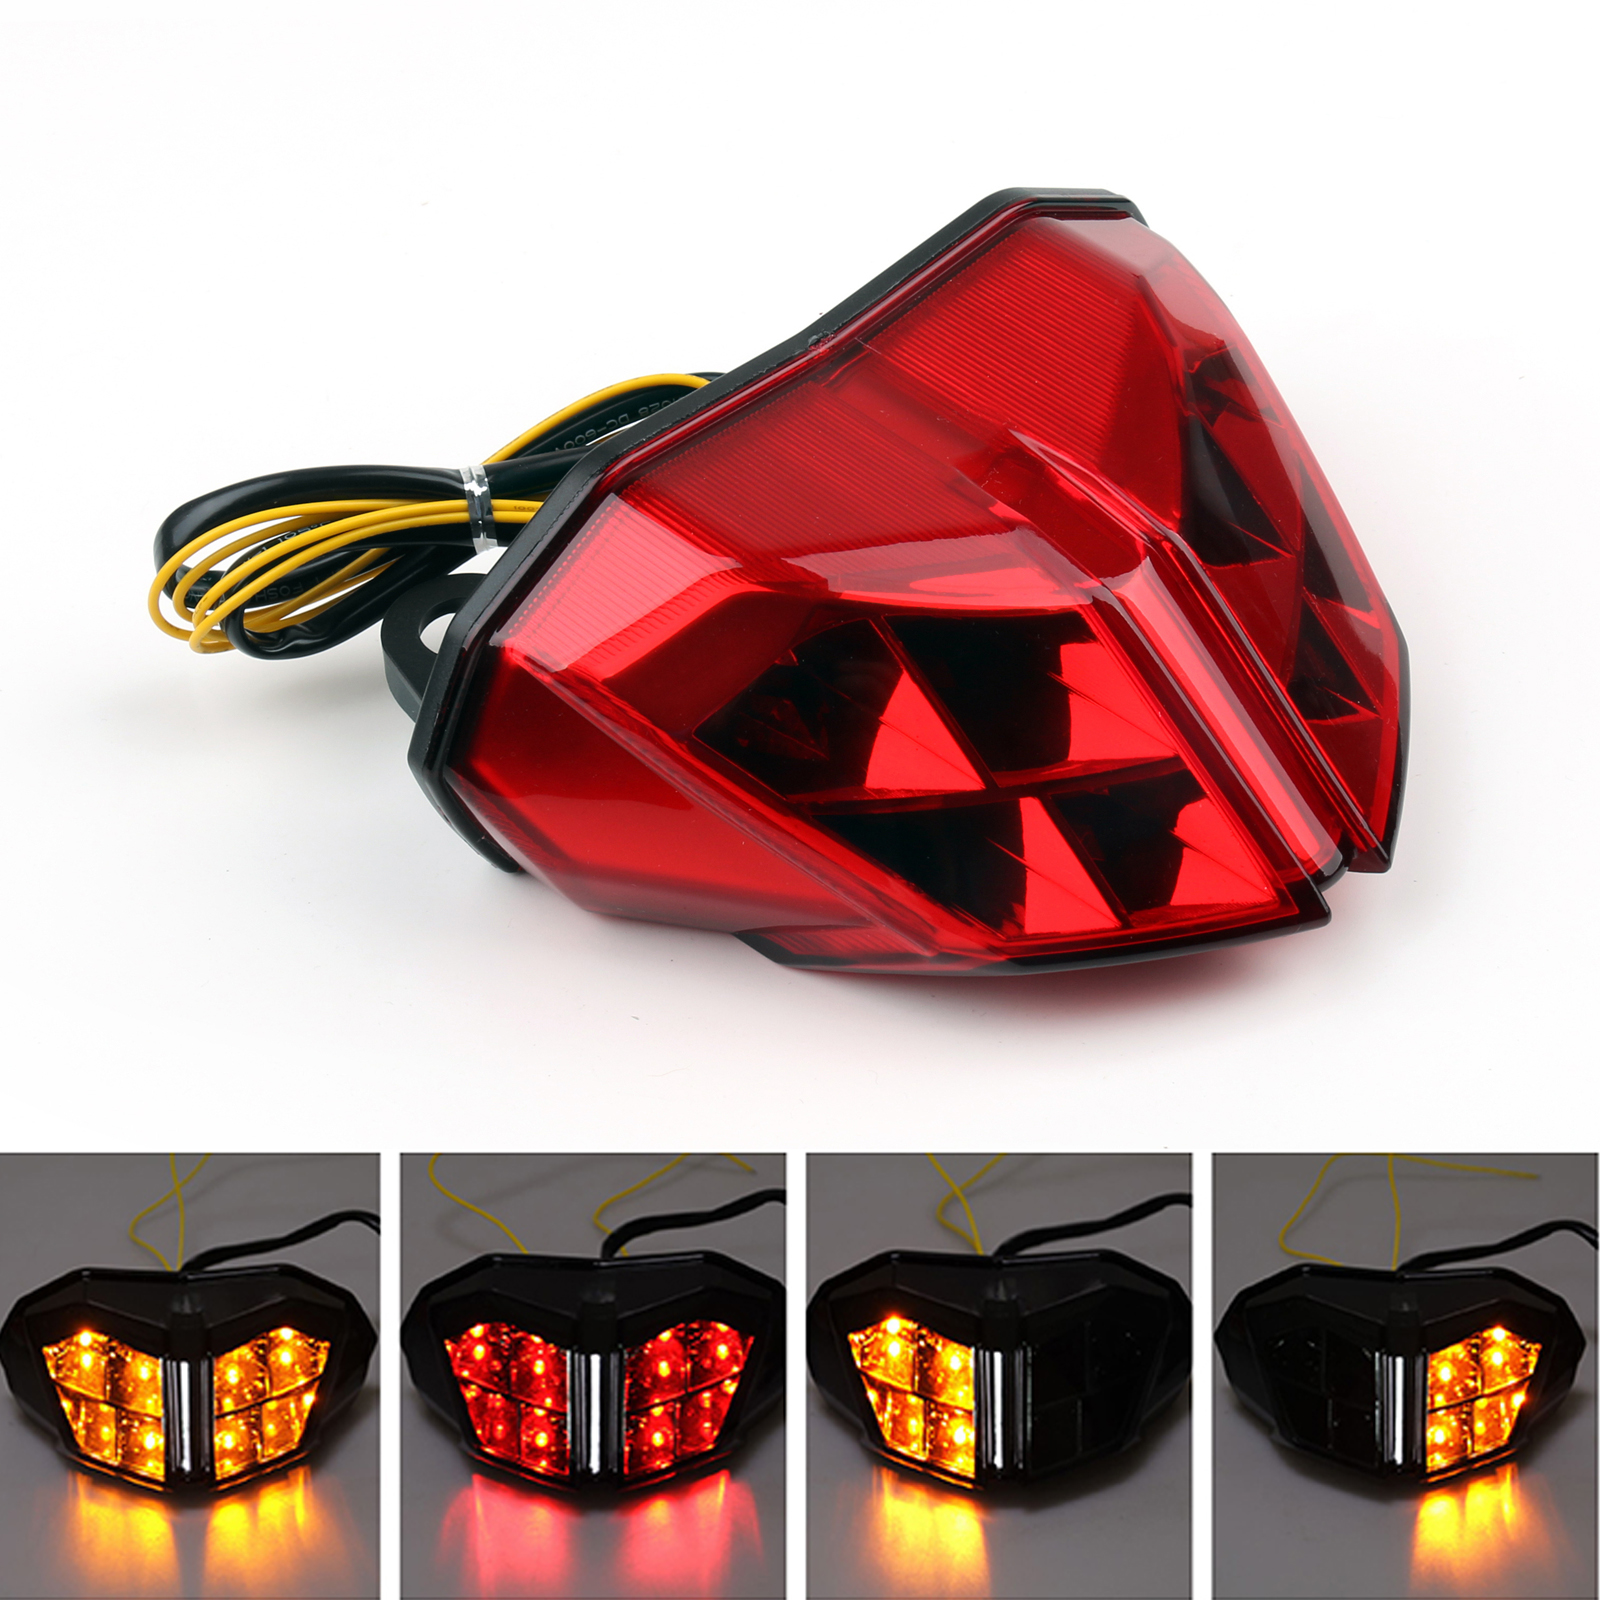 Ducati Streetfighter Integrated Tail Light